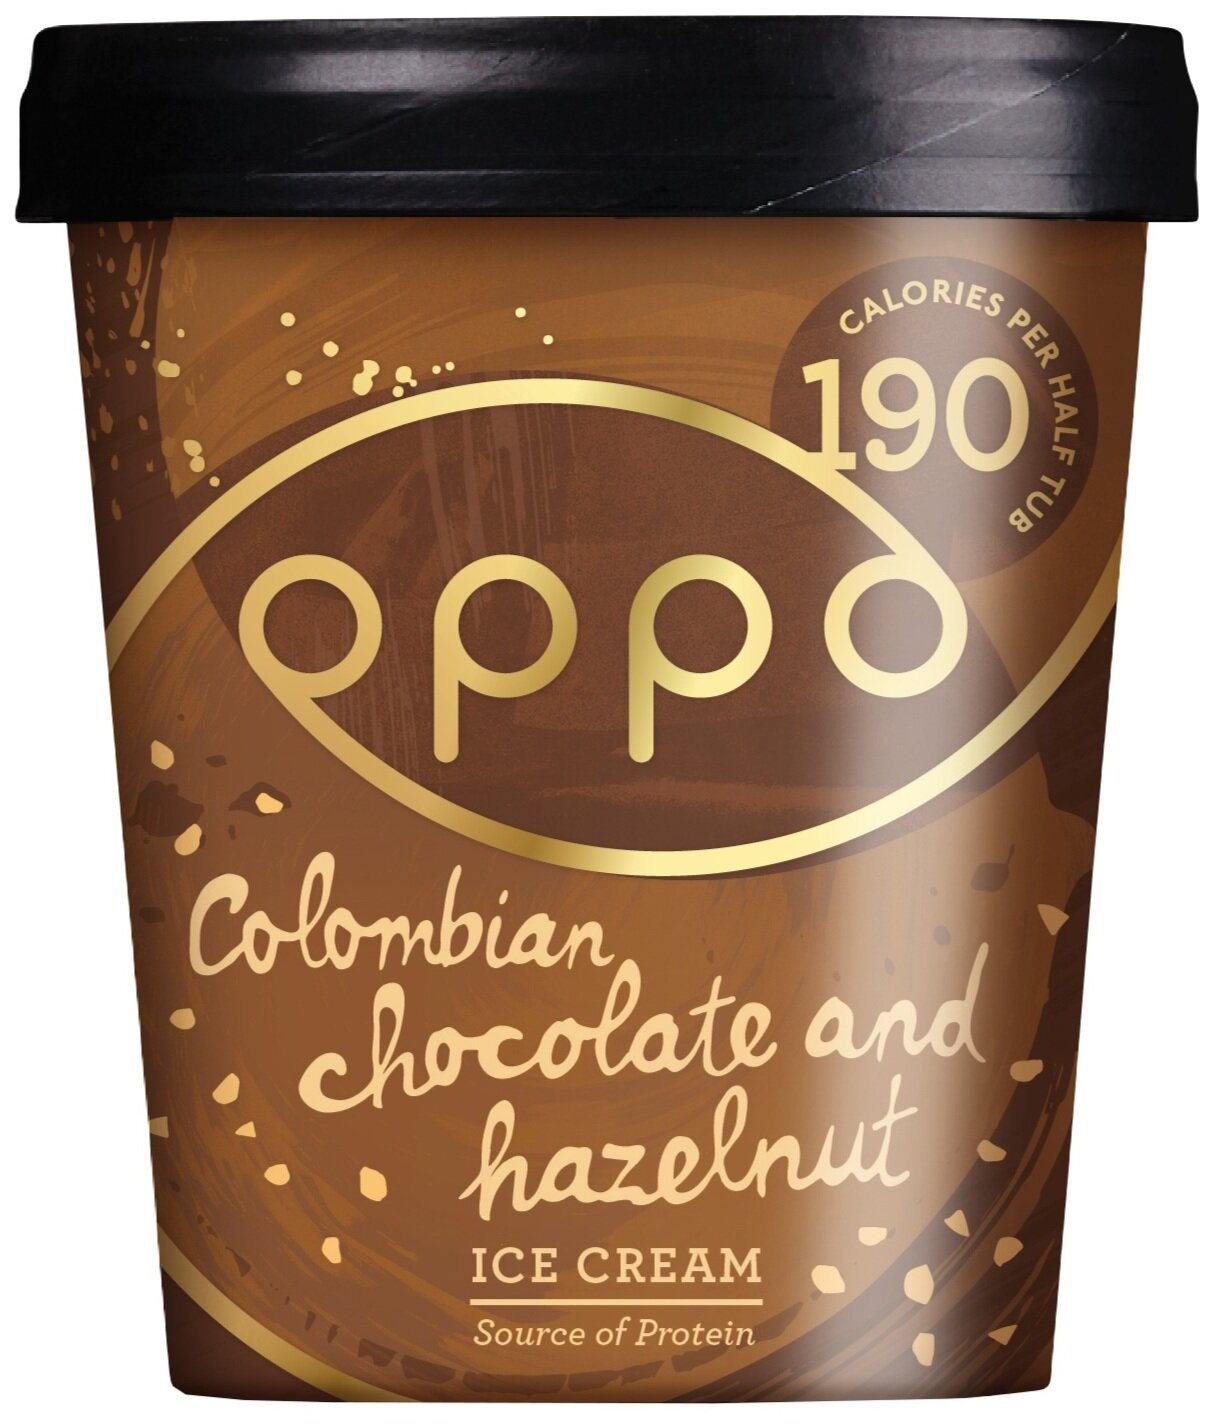 Oppo Colombian chocolate and hazelnut